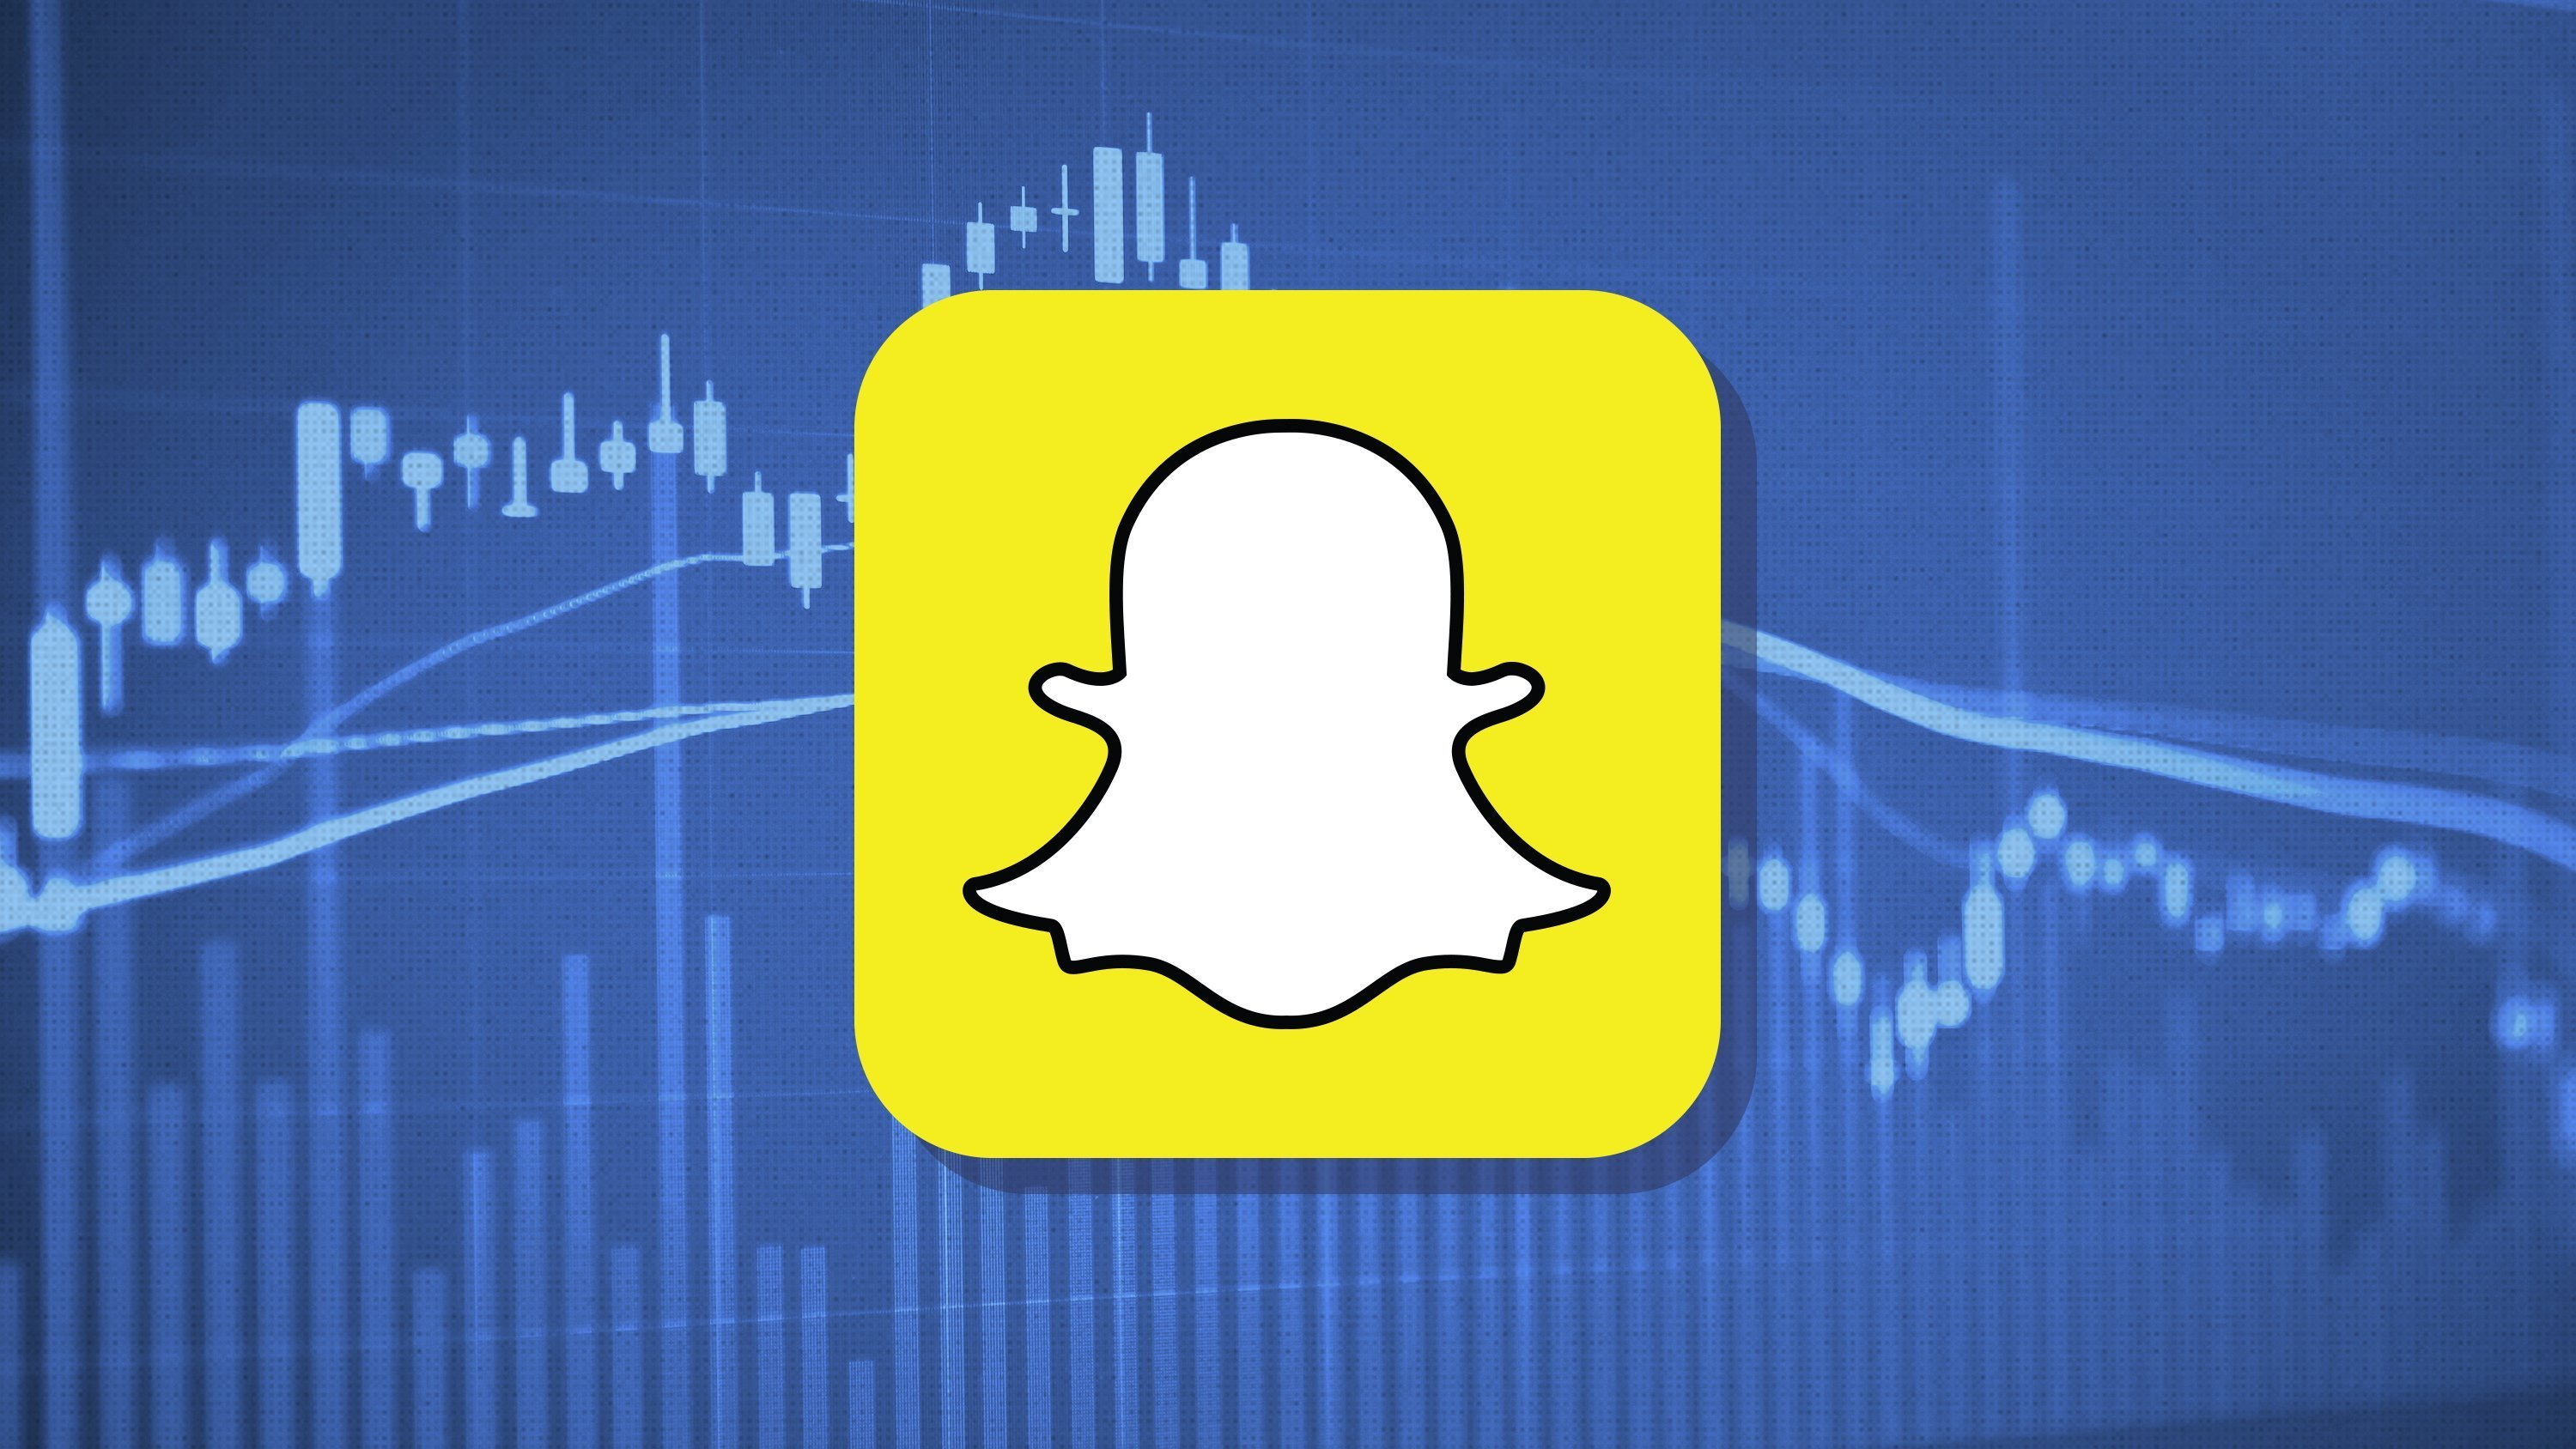 The Snap Inc. (NYSE:SNAP) Receives Hold Rating from Aegis